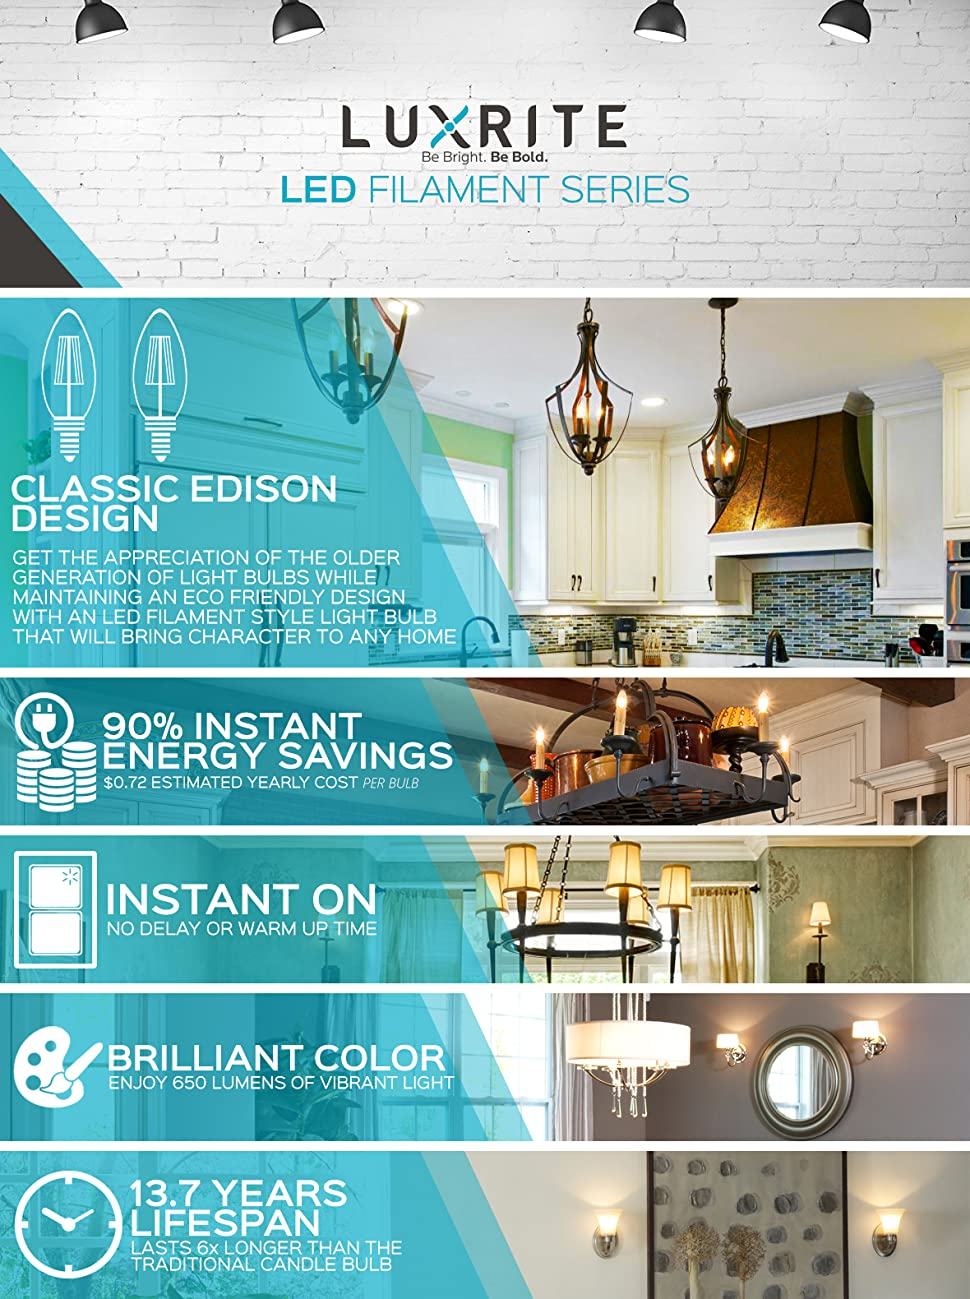 Luxrite E12 LED Filament Bulb, 6W, 5000K Bright White, 650 Lumens ...